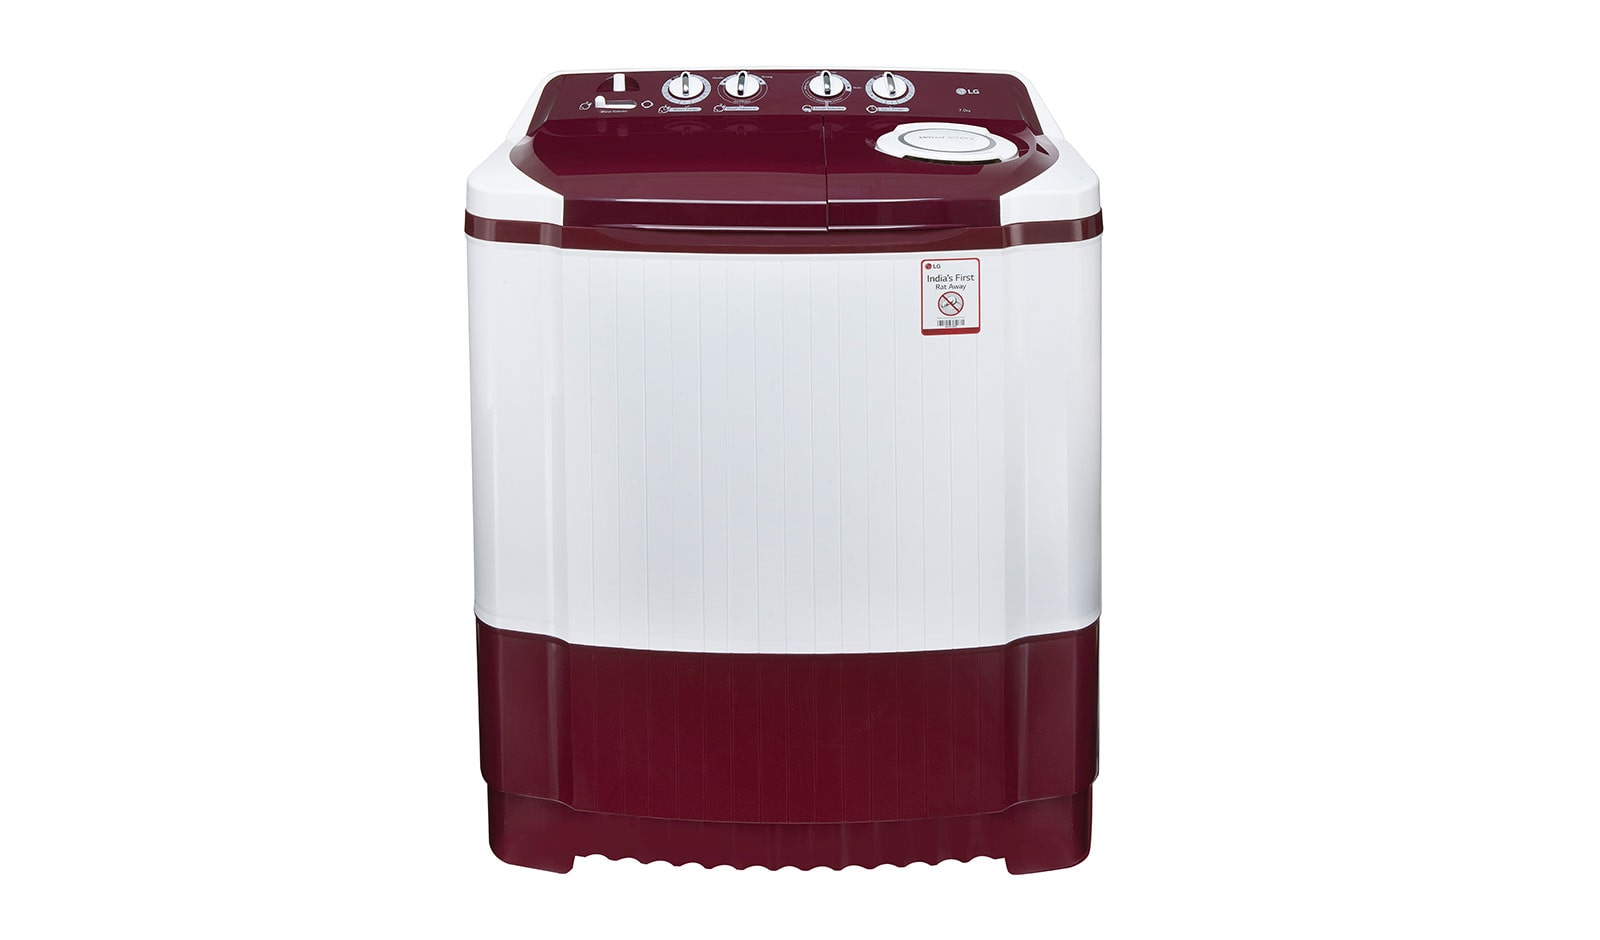 LG P8073R3FA 7KG Semi Automatic Top Load Washing Machine